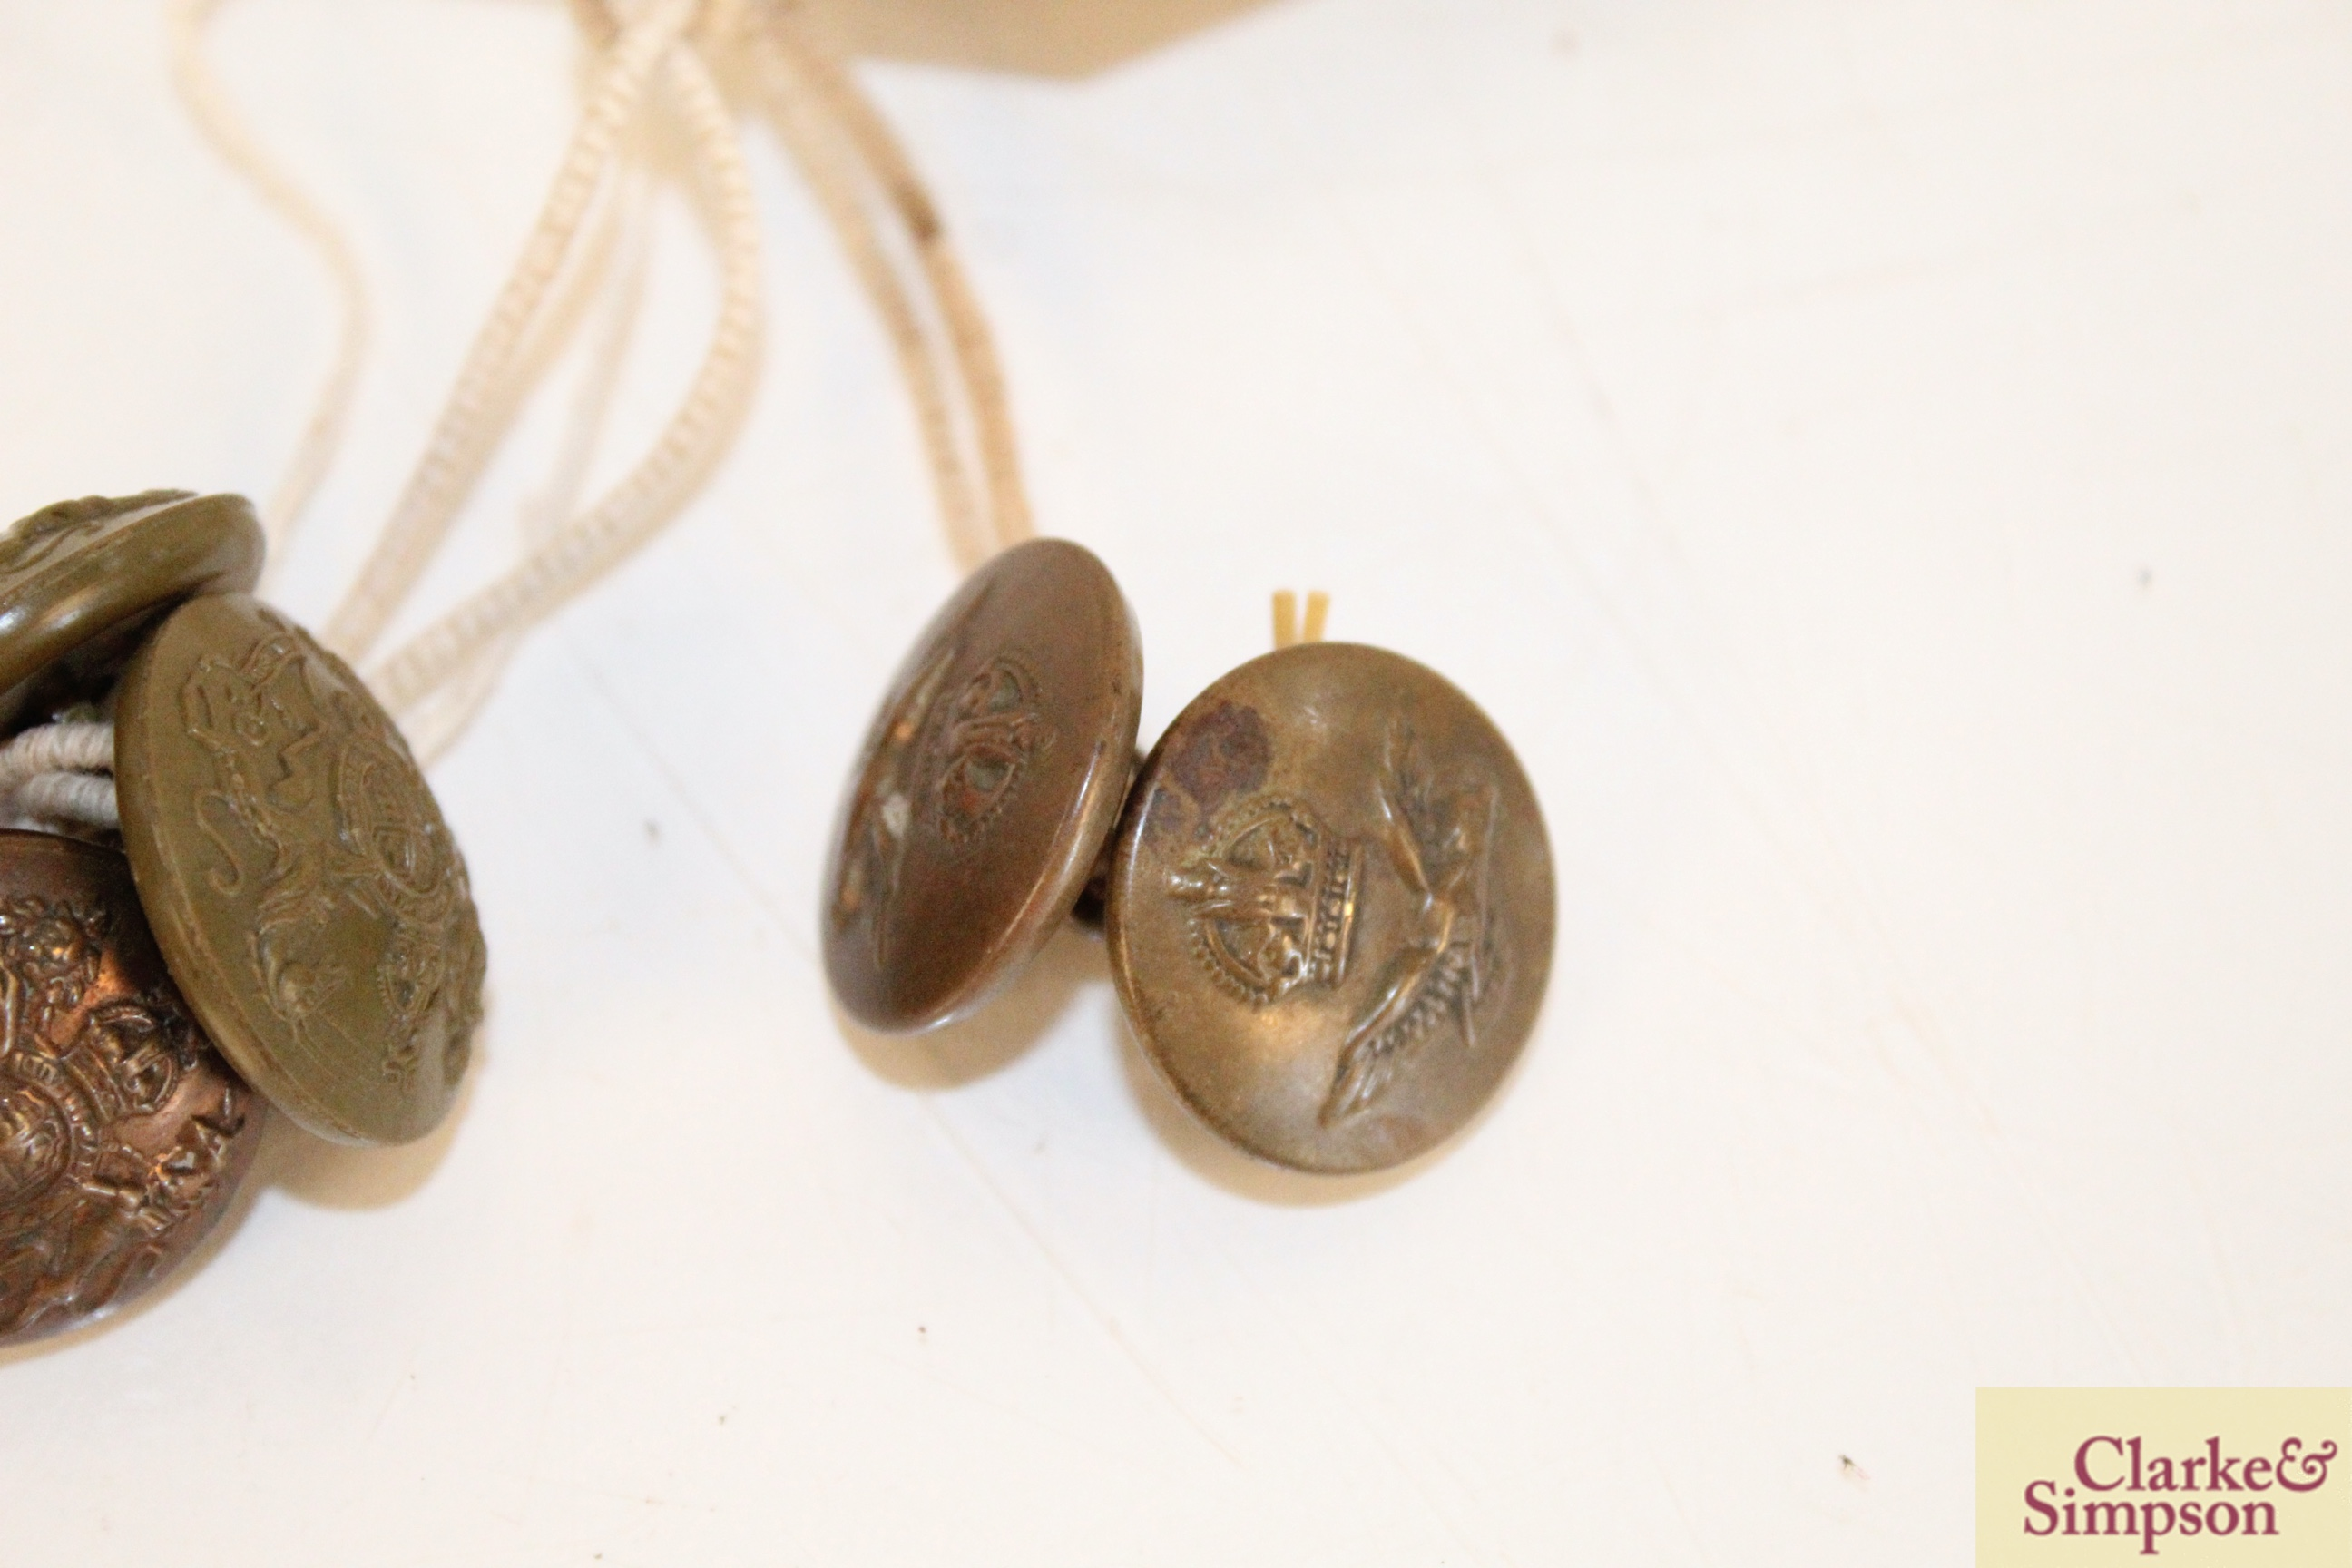 Two WW1 RAF buttons and four General Service buttons - Image 2 of 4